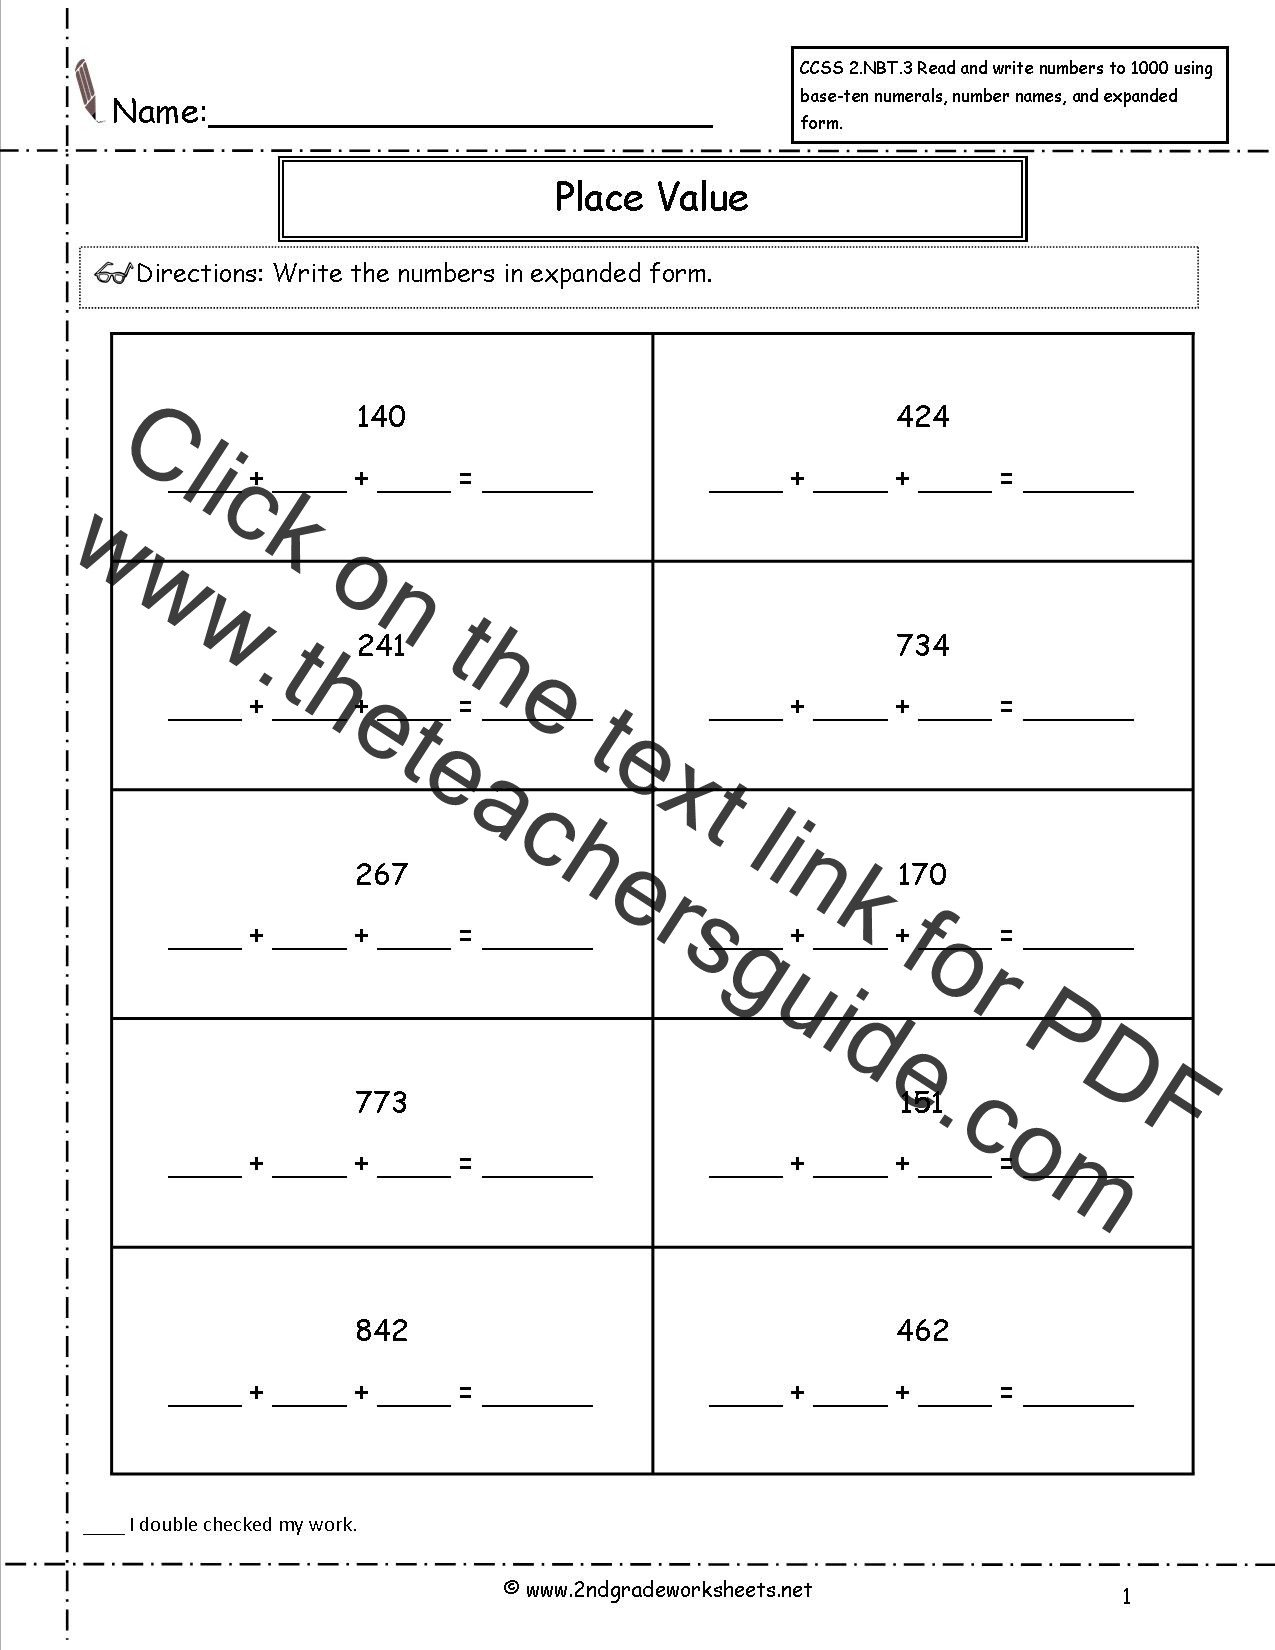 Expanded form Worksheets Second Grade 2nd Grade Math Expanded form Worksheets